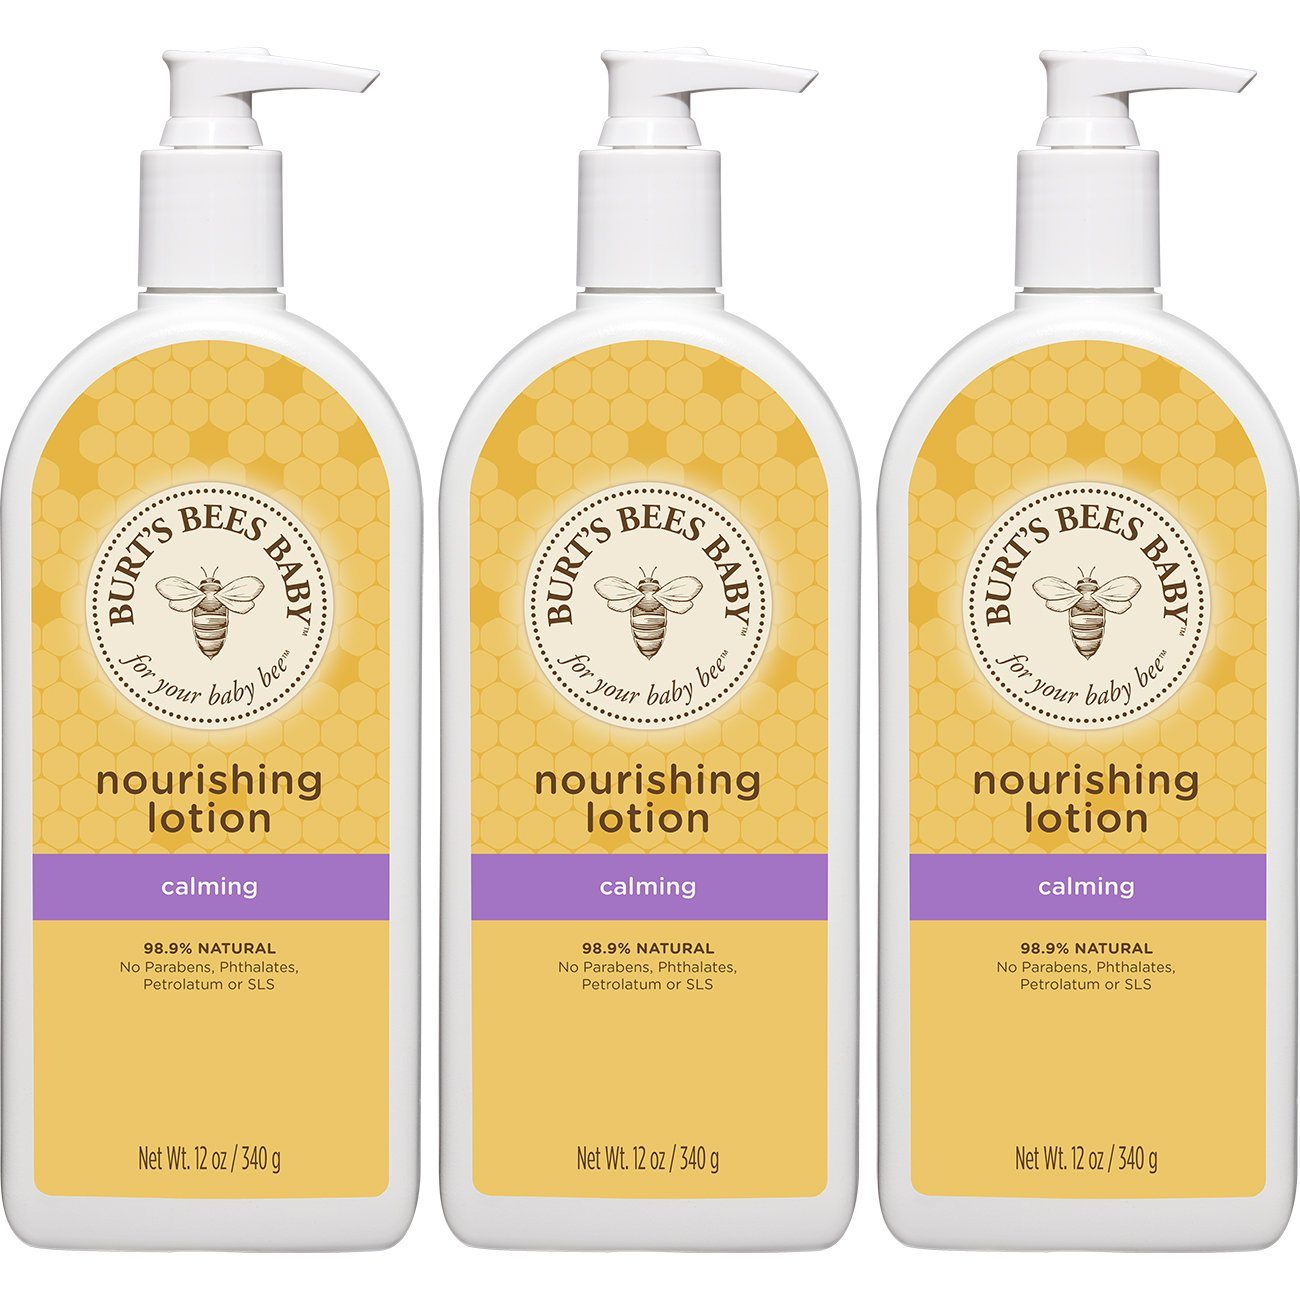 Burt's Bees Baby Nourishing Lotion, Calming Baby Lotion - 12 Ounce Bottle (Pack of 3) by Burt's Bees